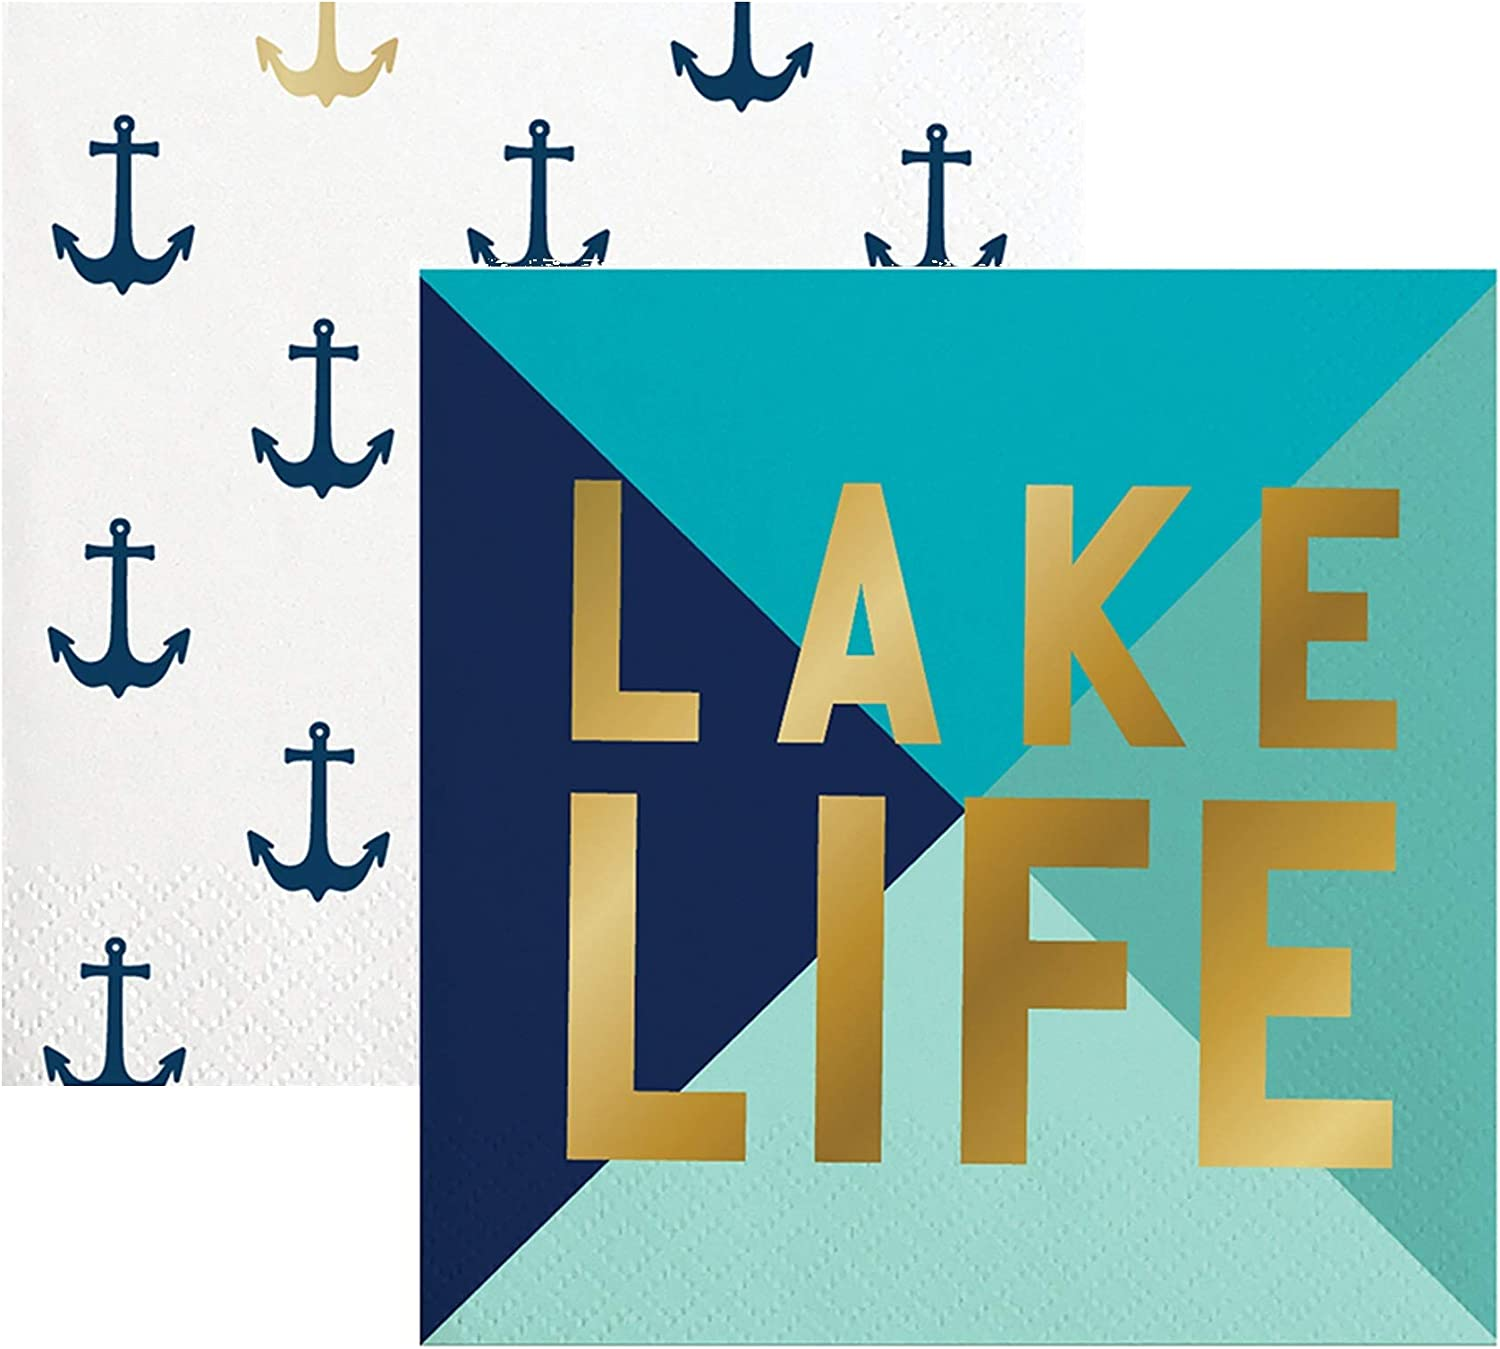 40 Nautical and Lake Themed Paper Napkins | Napkin Set For Cocktail Beverage, Luncheon, Dessert, Appetizer, Birthday Or Marine Theme Party | 2 Packs Of 20 Napkins